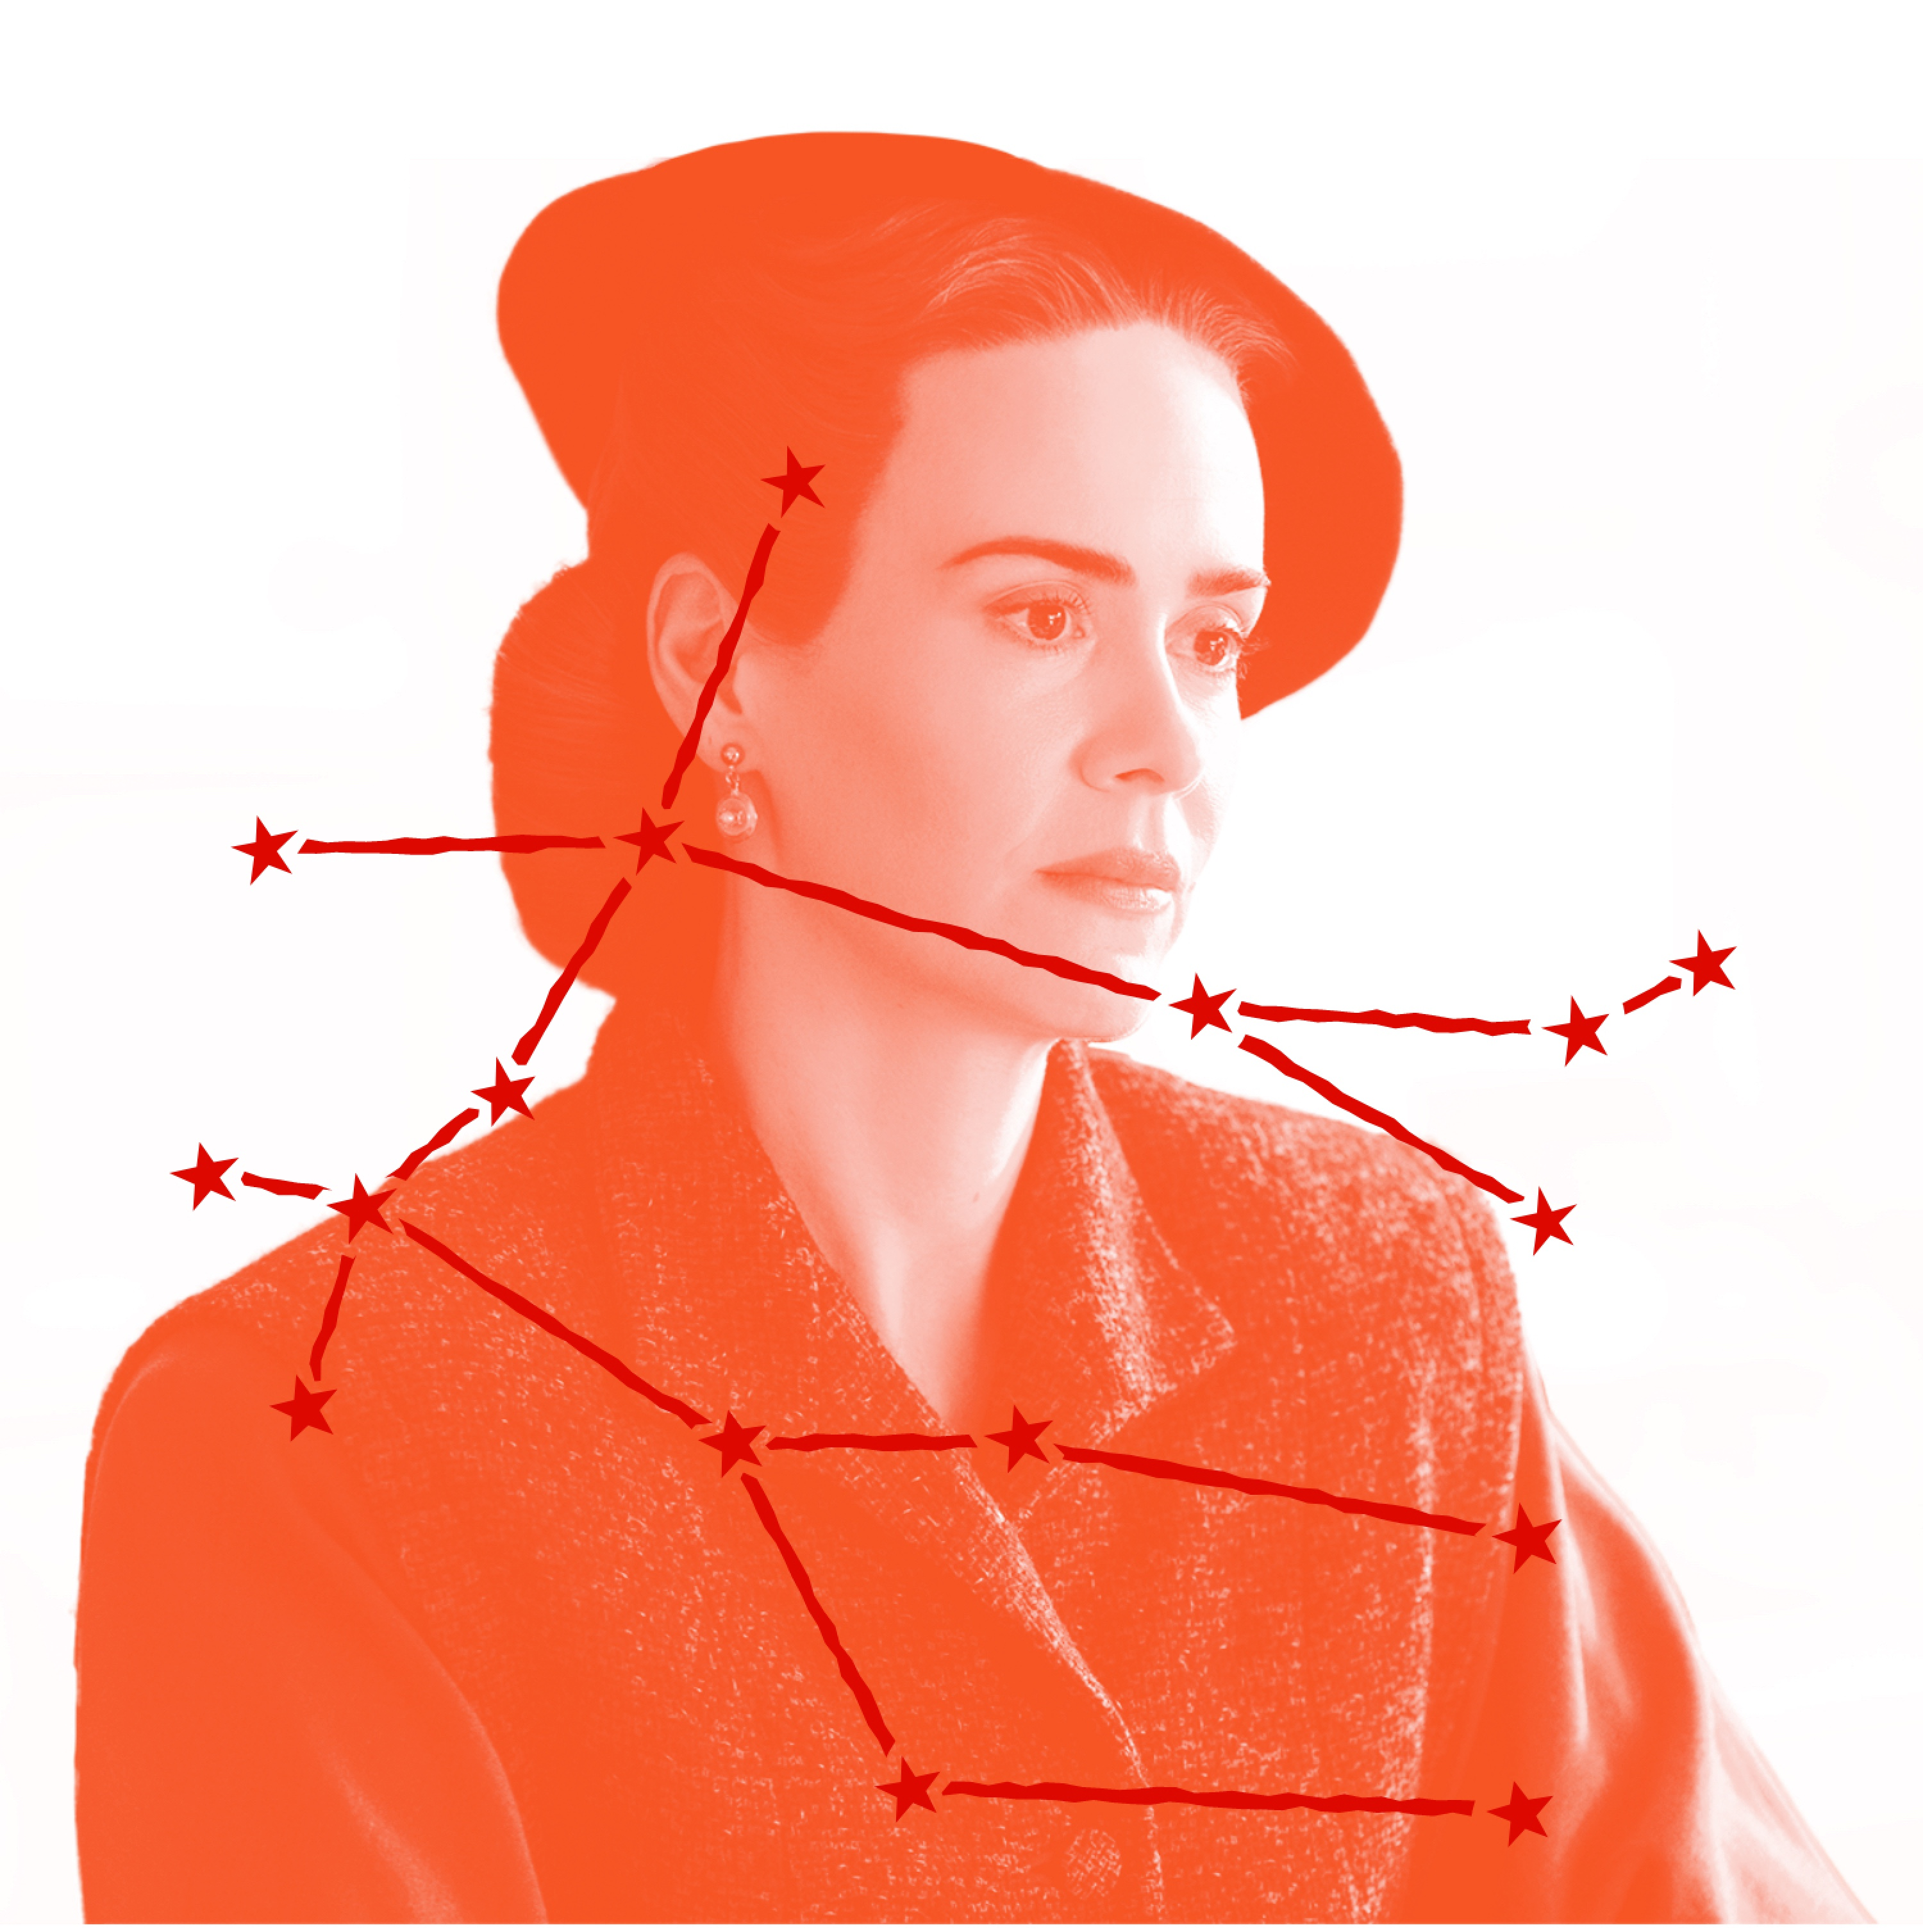 Mildred Ratched (played by Sarah Paulson) looks stern in a precisely chosen coat and hat ensemble in this still from Ratched. We know her star sign, but even we can't tell you what she's scheming. Over the image is an illustration of Mildred's zodiac constellation.